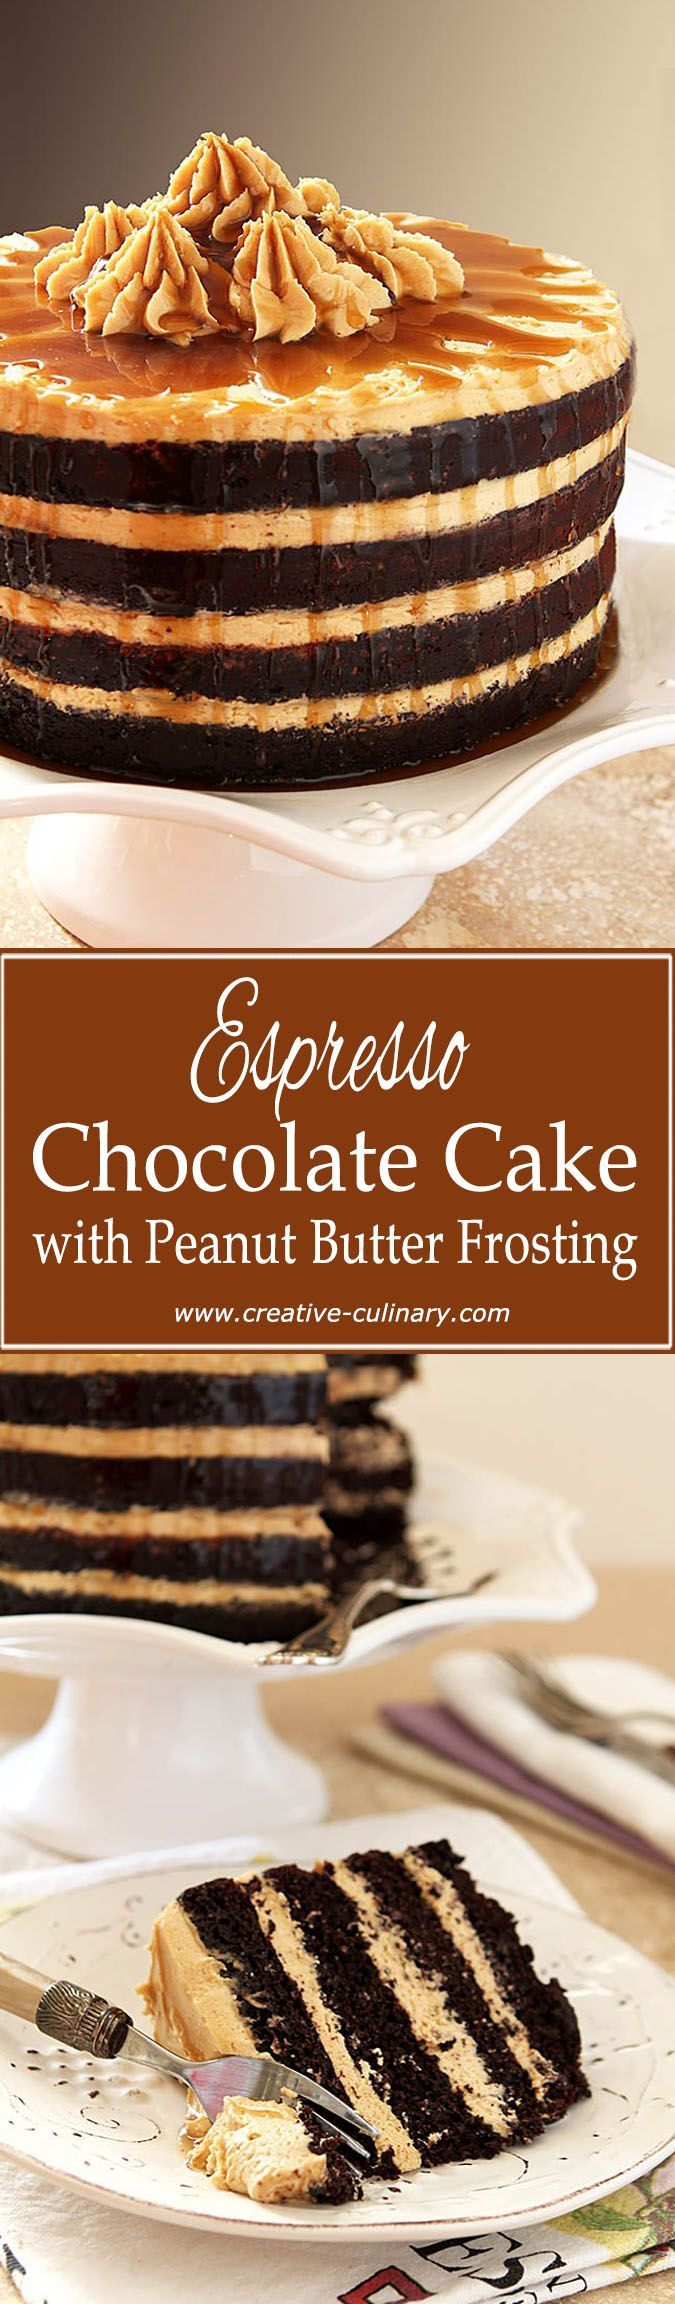 This Espresso Chocolate Cake with Peanut Butter Frosting is finished with a Rum Drizzle. It's fantastic! via @creativculinary